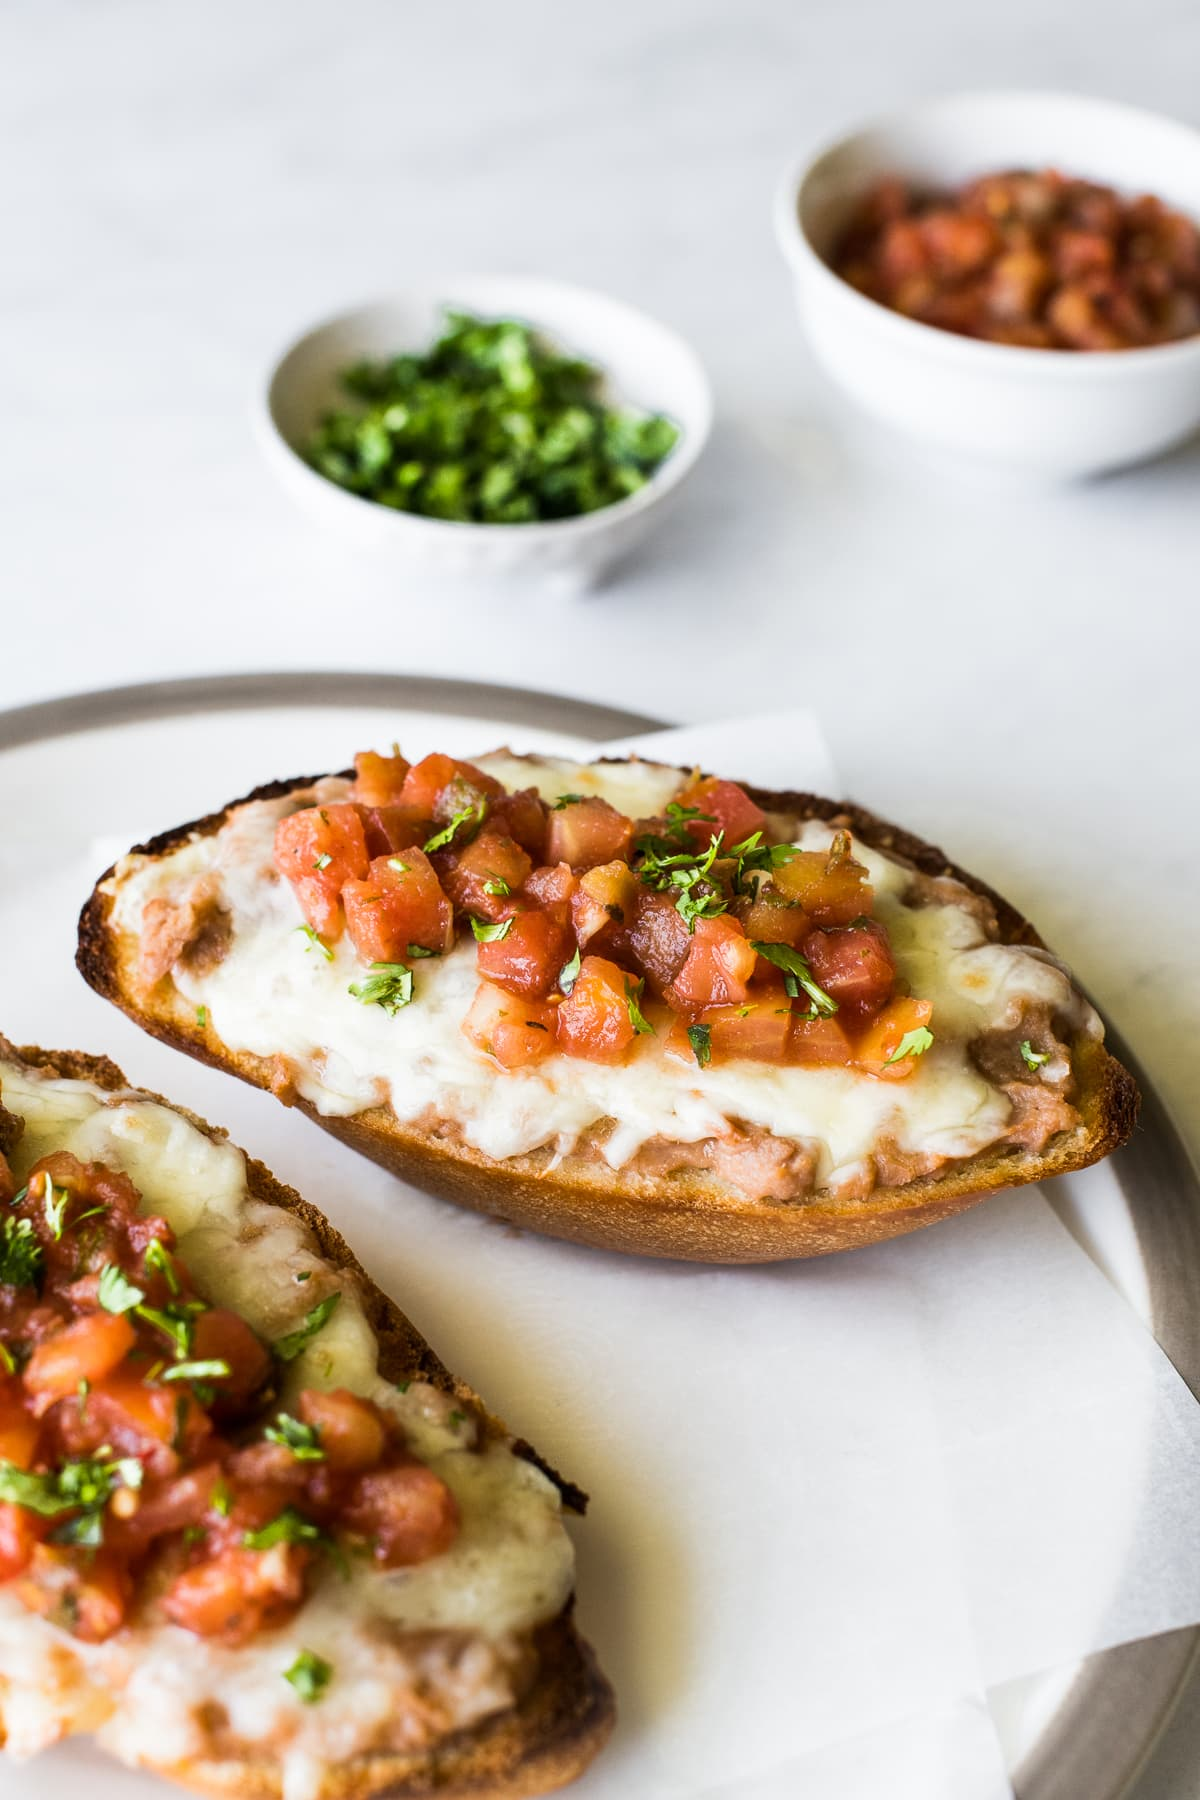 Molletes on a plate topped with pico de gallo.